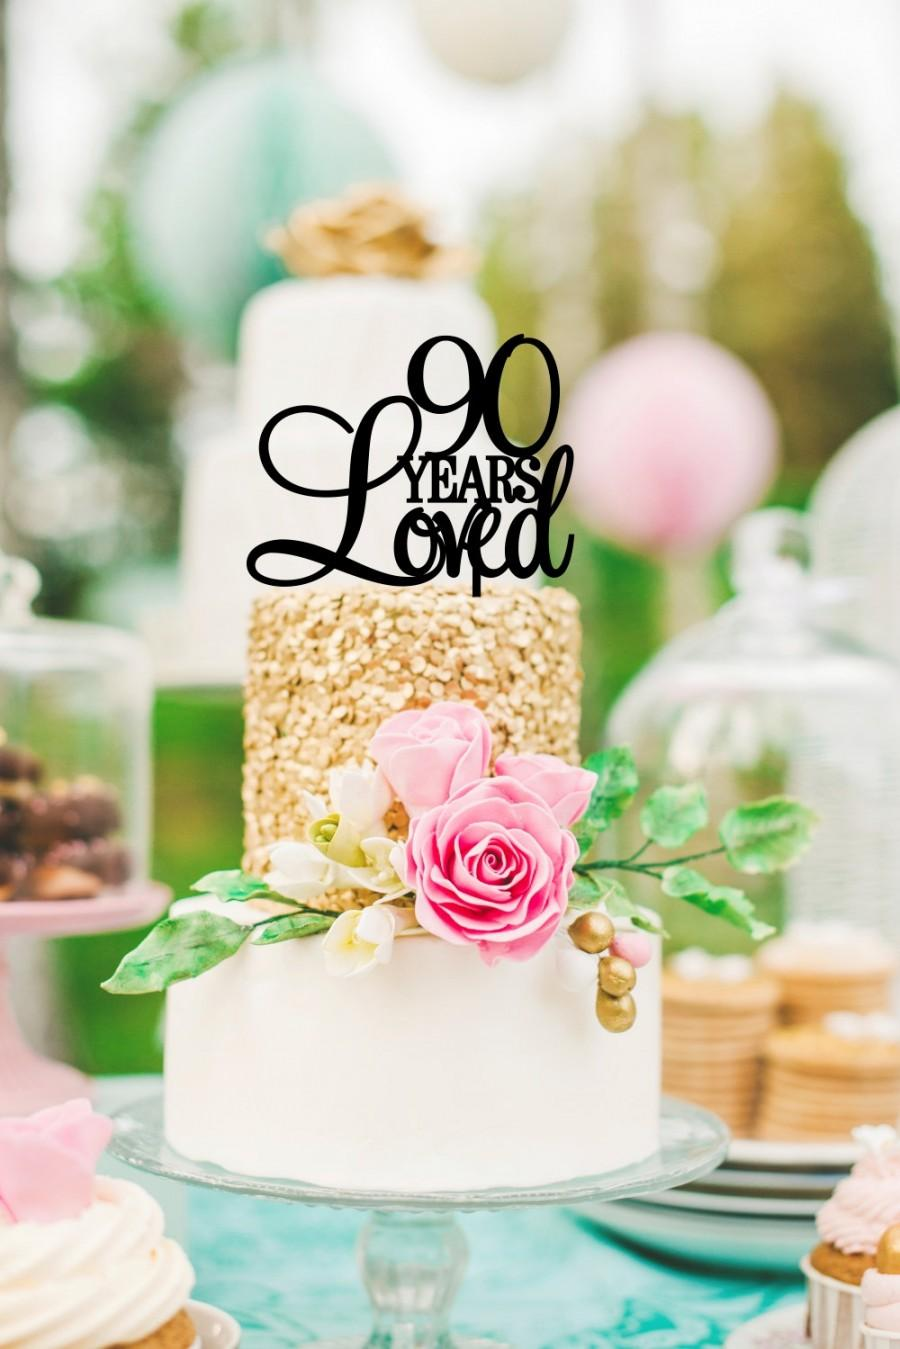 custom 90 years loved cake topper 90th birthday cake topper 90 years ...